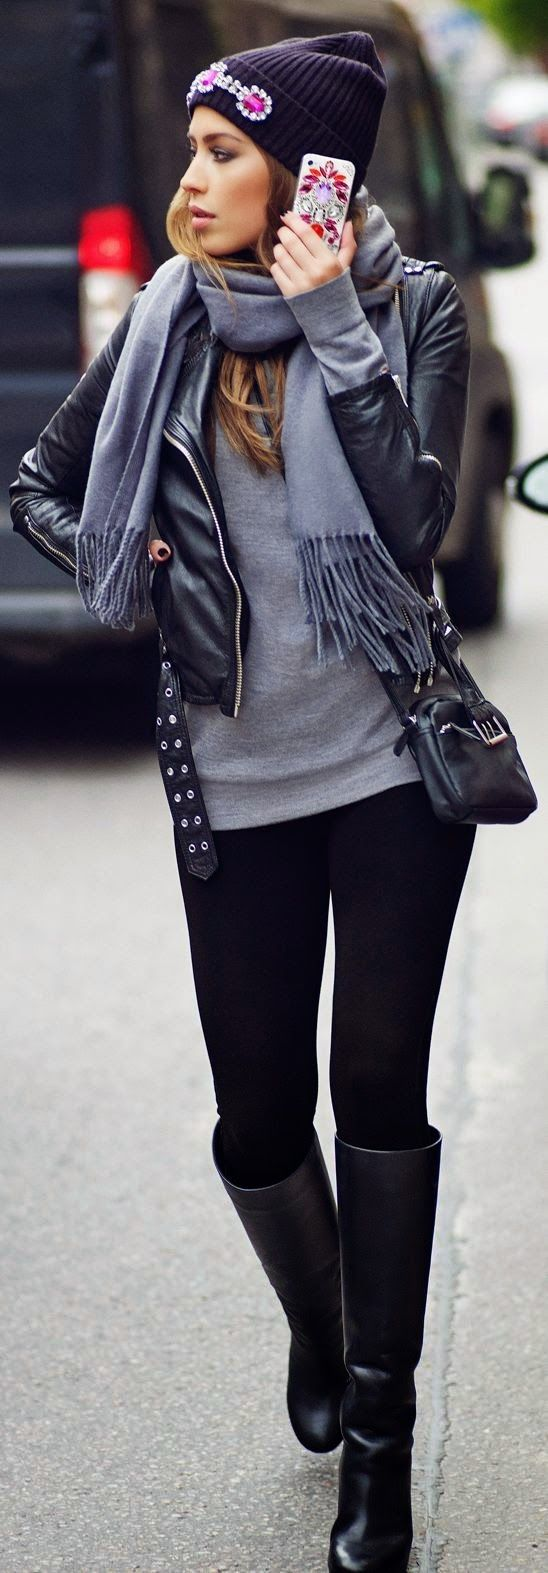 1000 Ideas About Rome Street Style On Pinterest Rome